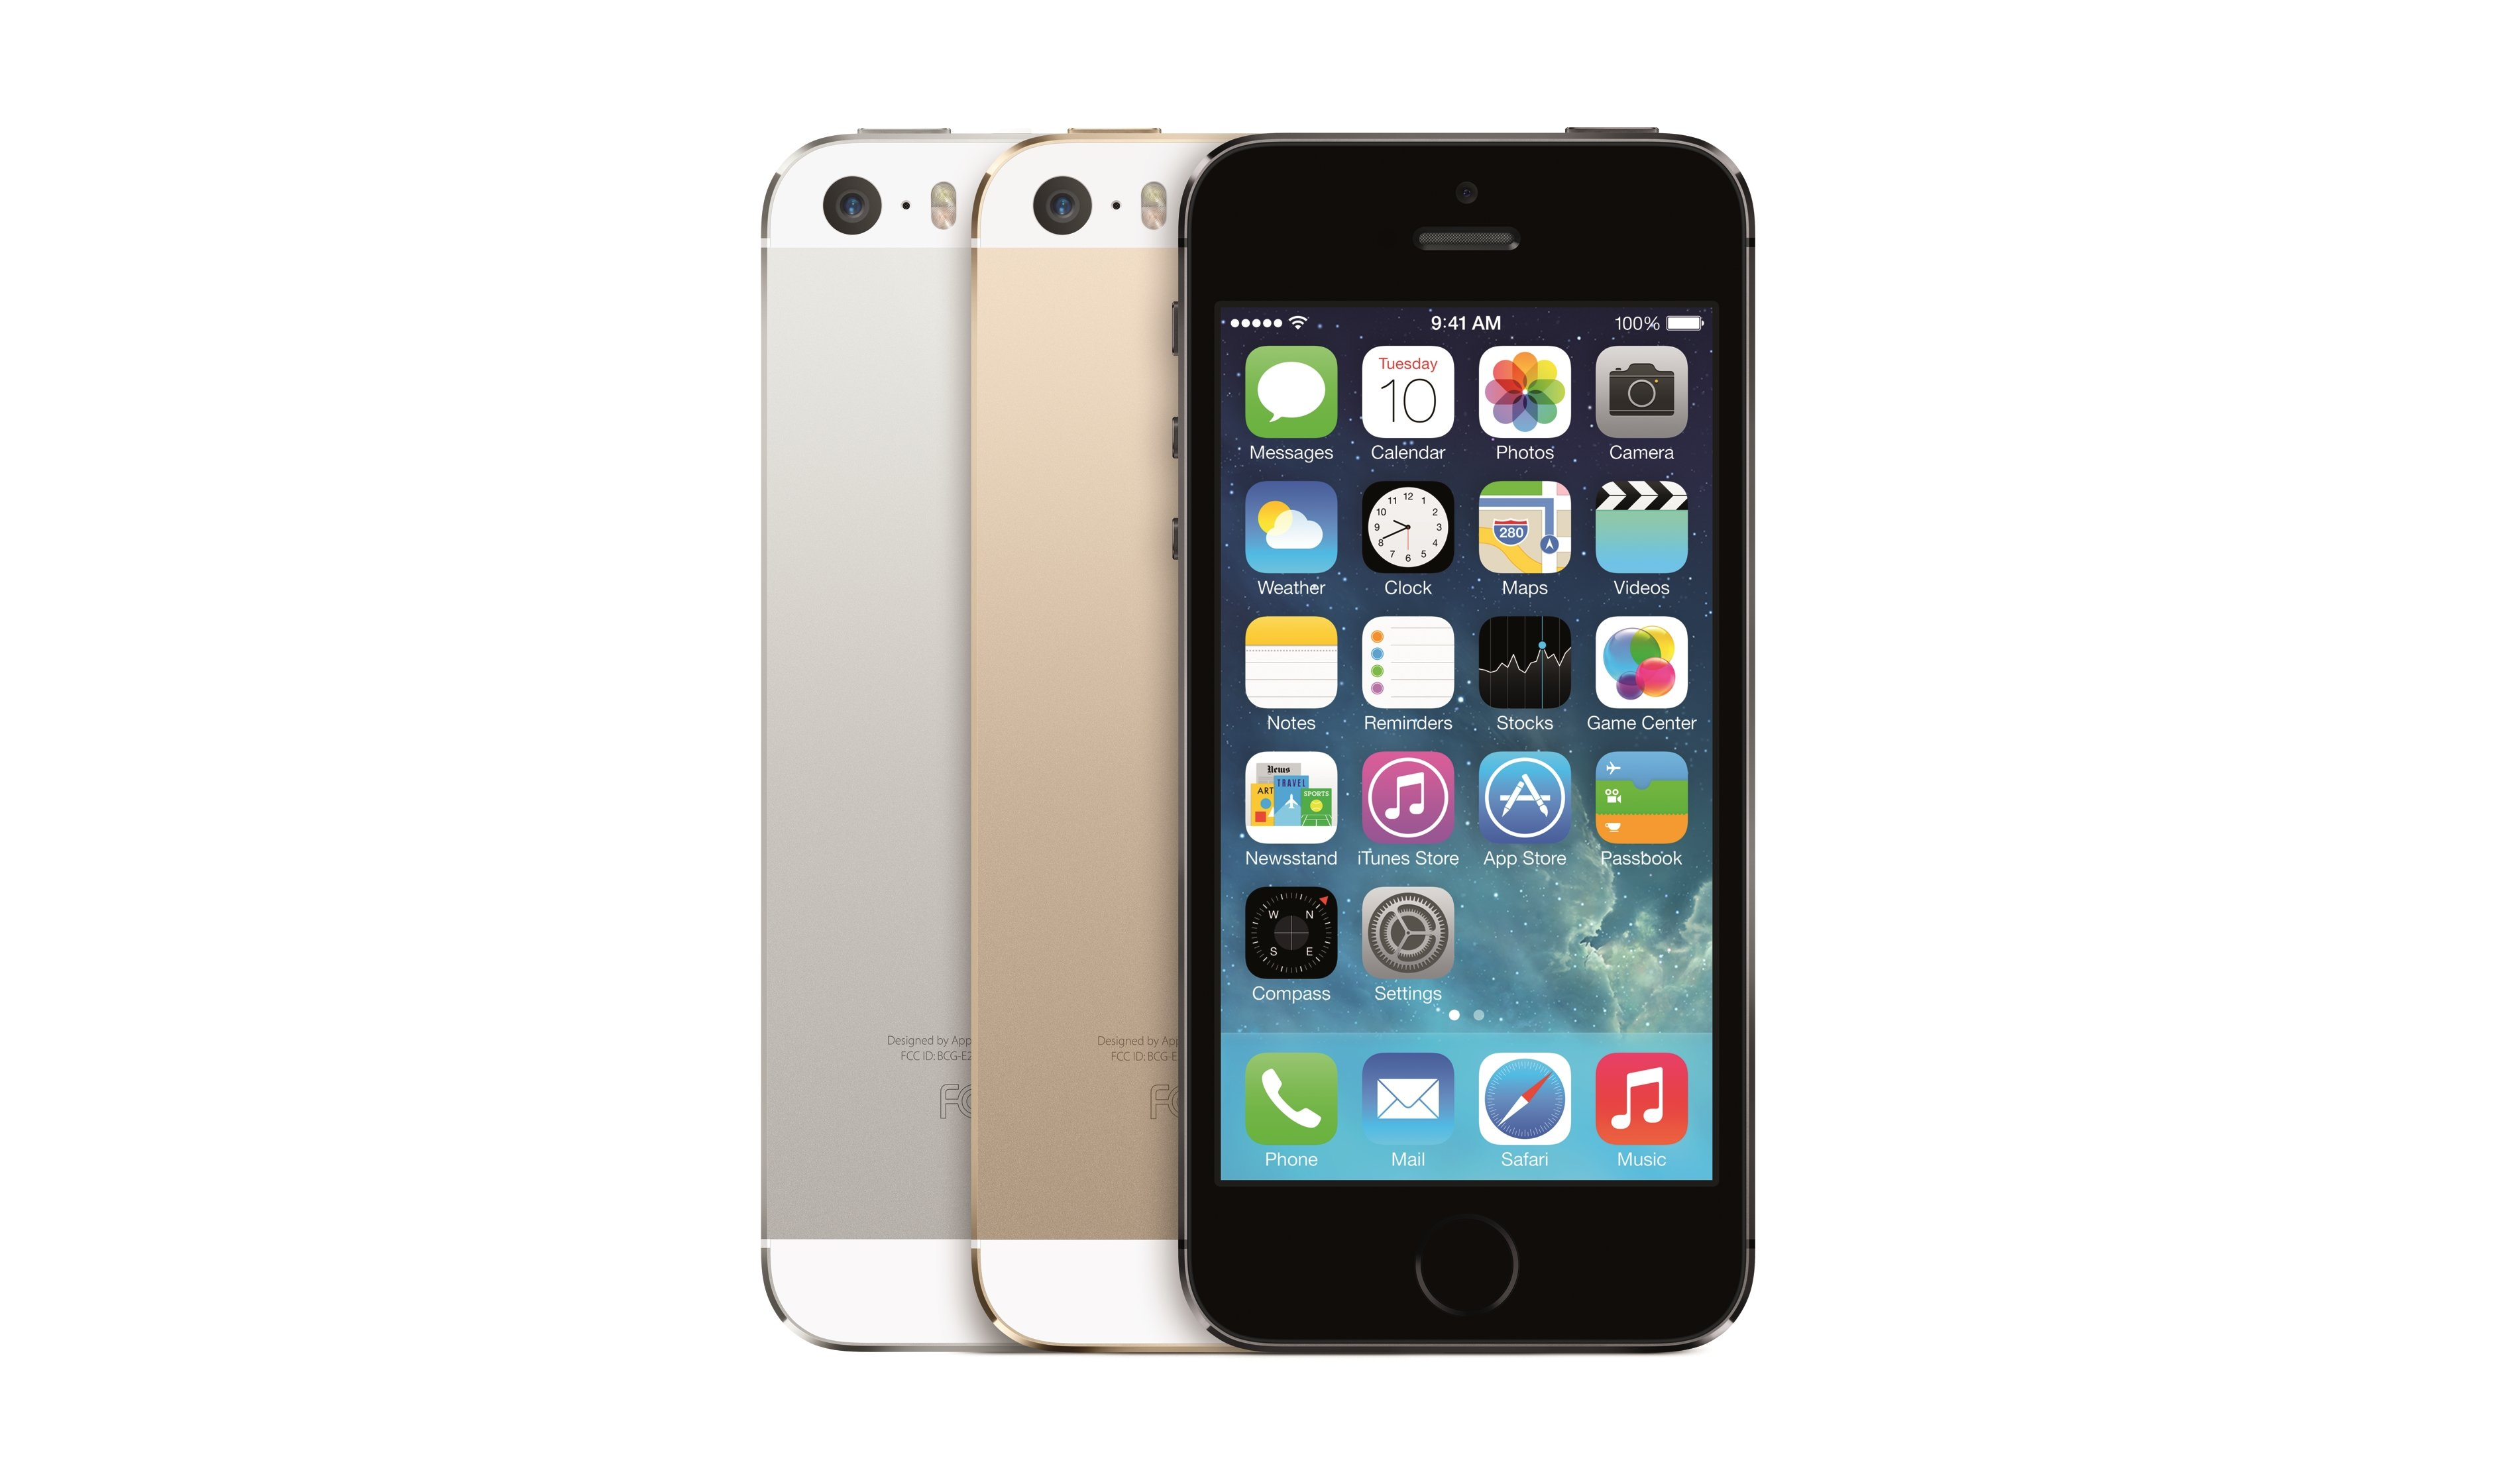 30a8cdd1d9ba Best iPhone 5S deals - contracts on EE, Vodafone, Three & O2 ...